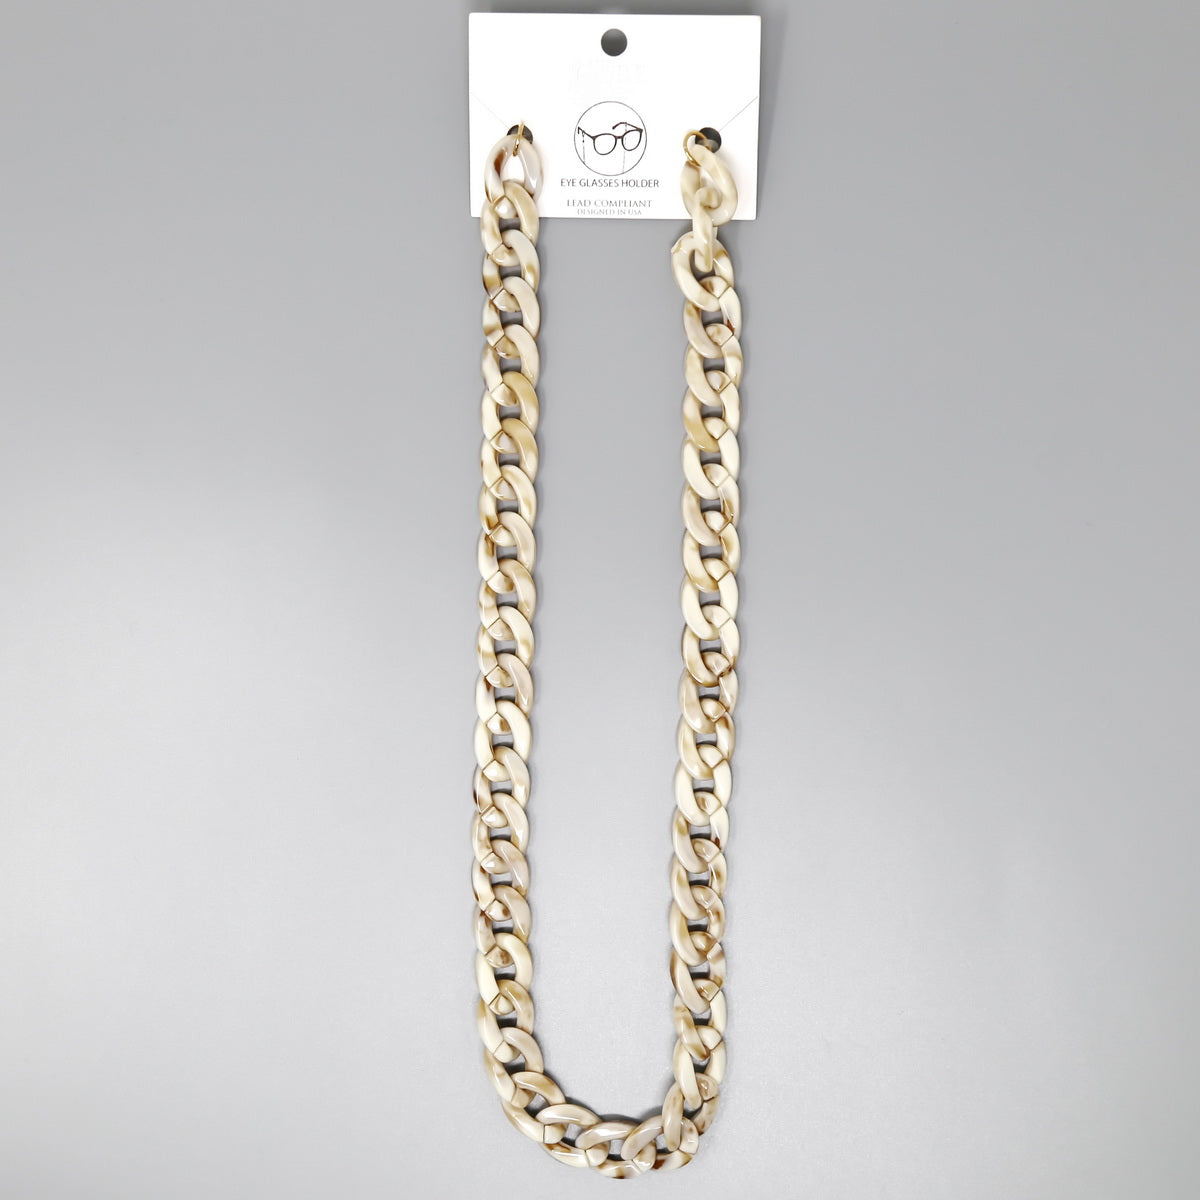 Acetate Flattened Linked Chain Glasses Holder